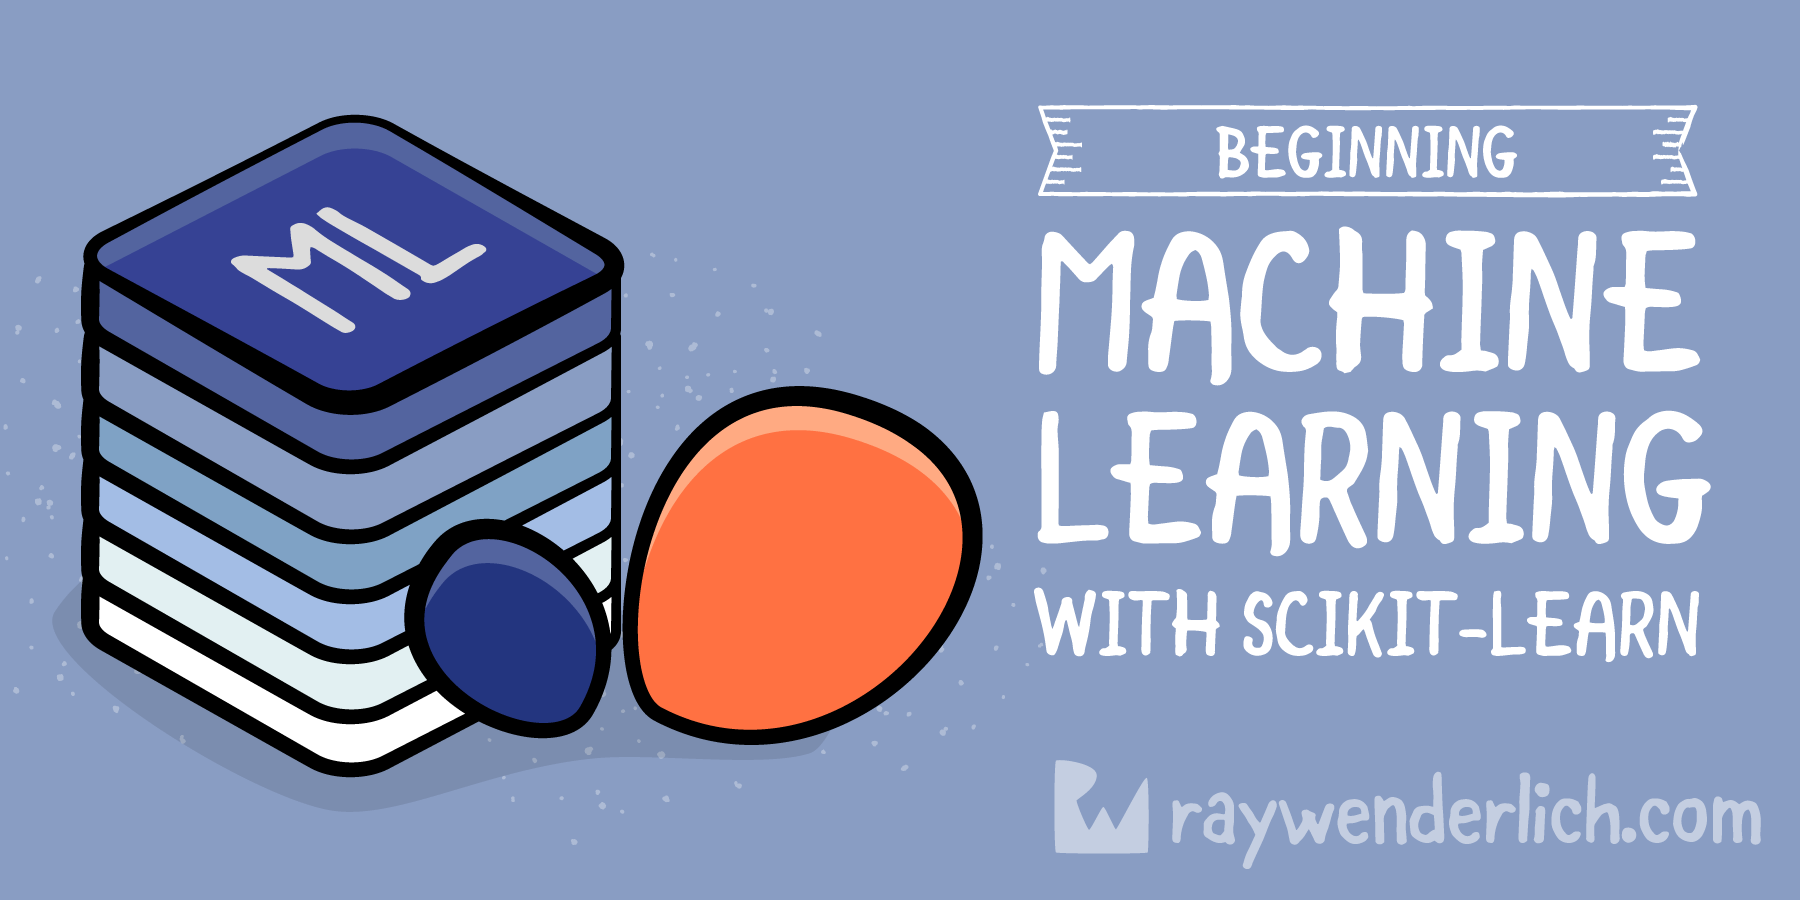 Beginning Machine Learning with scikit-learn | raywenderlich com